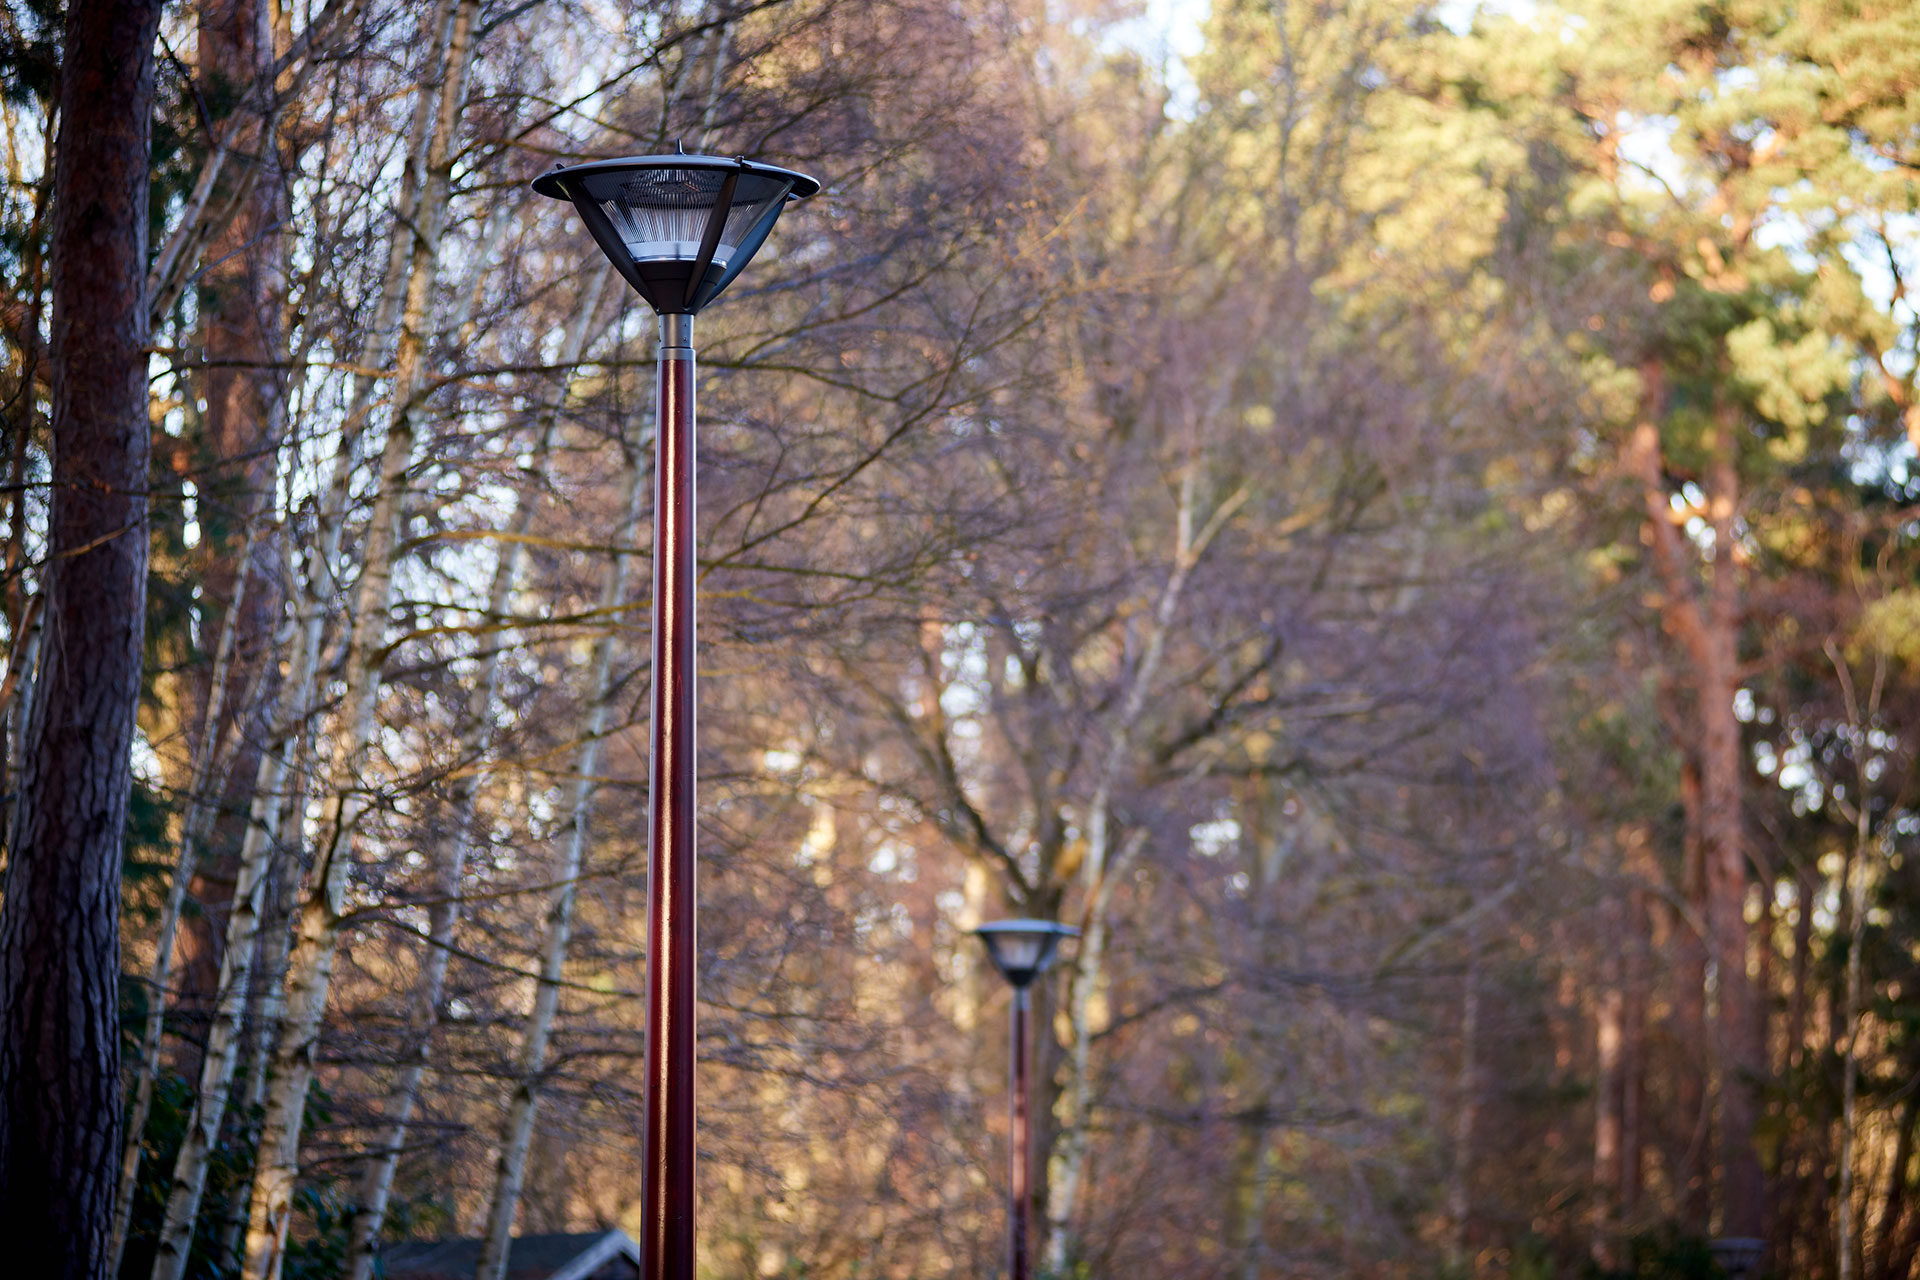 Alura luminaire discreetly integrates this woodland area